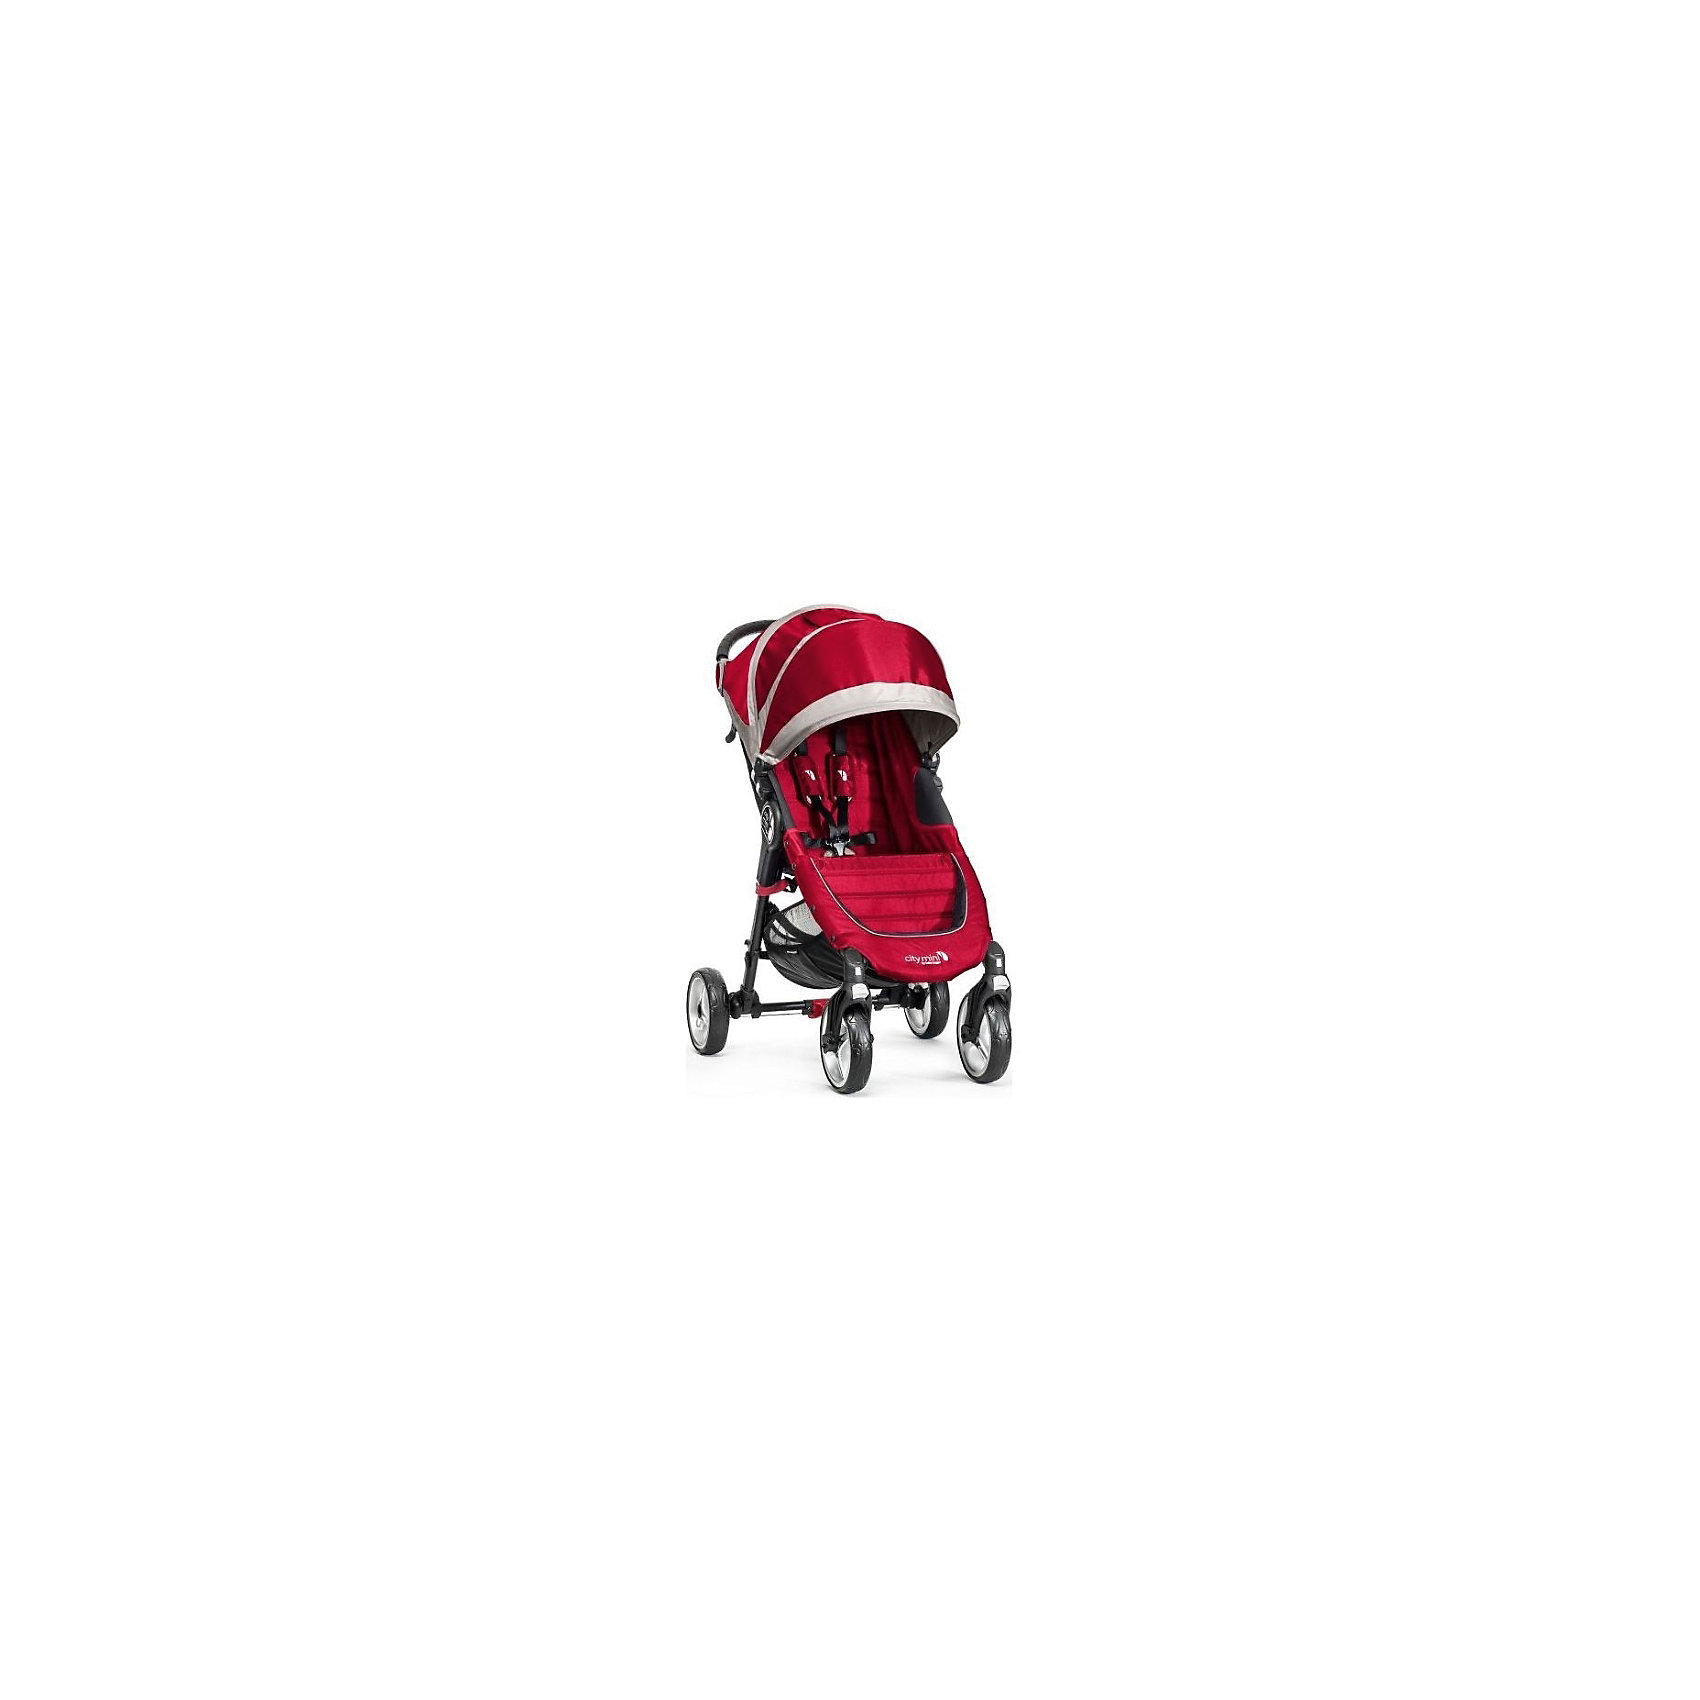 Baby Jogger Прогулочная коляска City Mini Single 4Wheel, Baby Jogger, красно-серый прогулочная коляска liko baby city style bt 109 grey